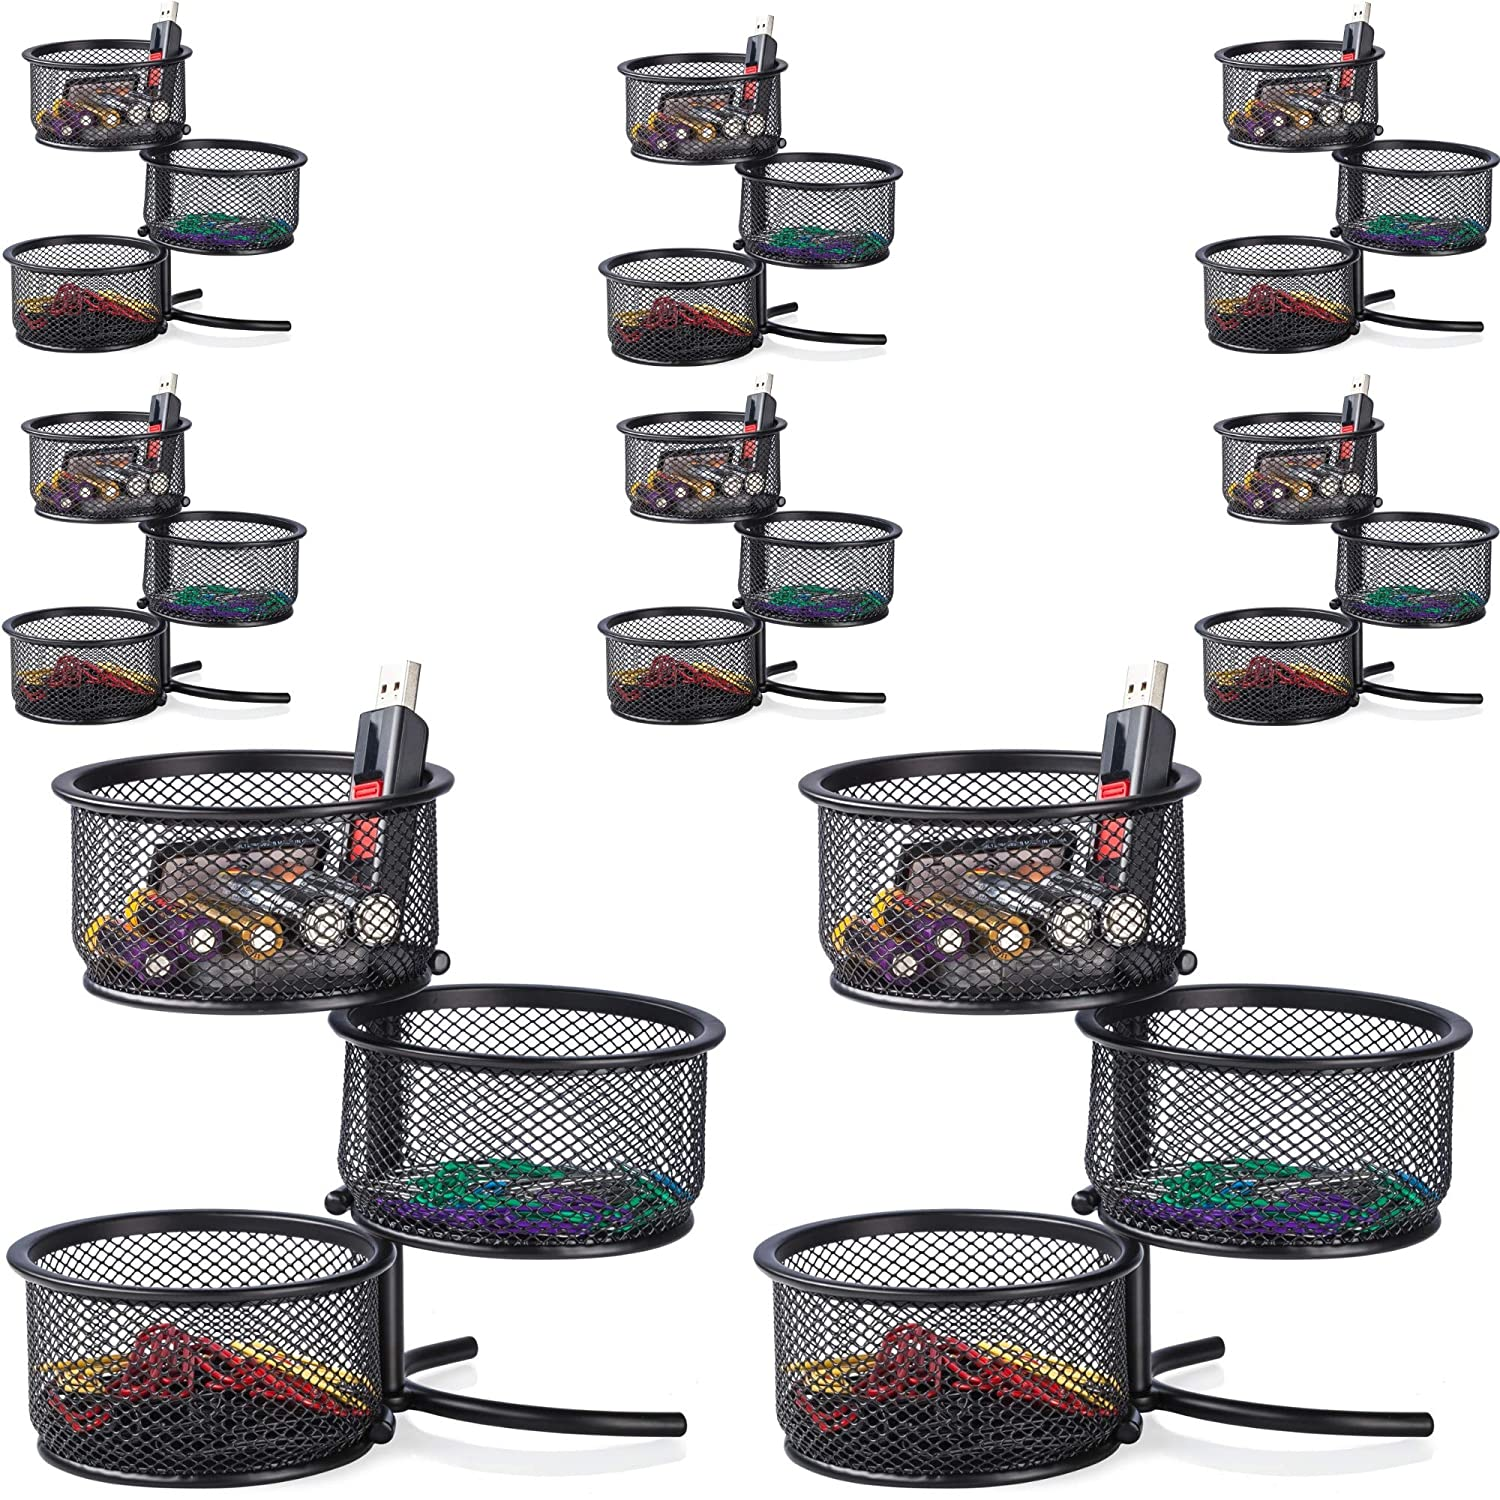 Desk Paper Clip Holder & Office Accessories Organizer - 3 Tier Mesh Swivel Tower Sorter, Black - 2 Pack Halter HALMESHCLIPSTND